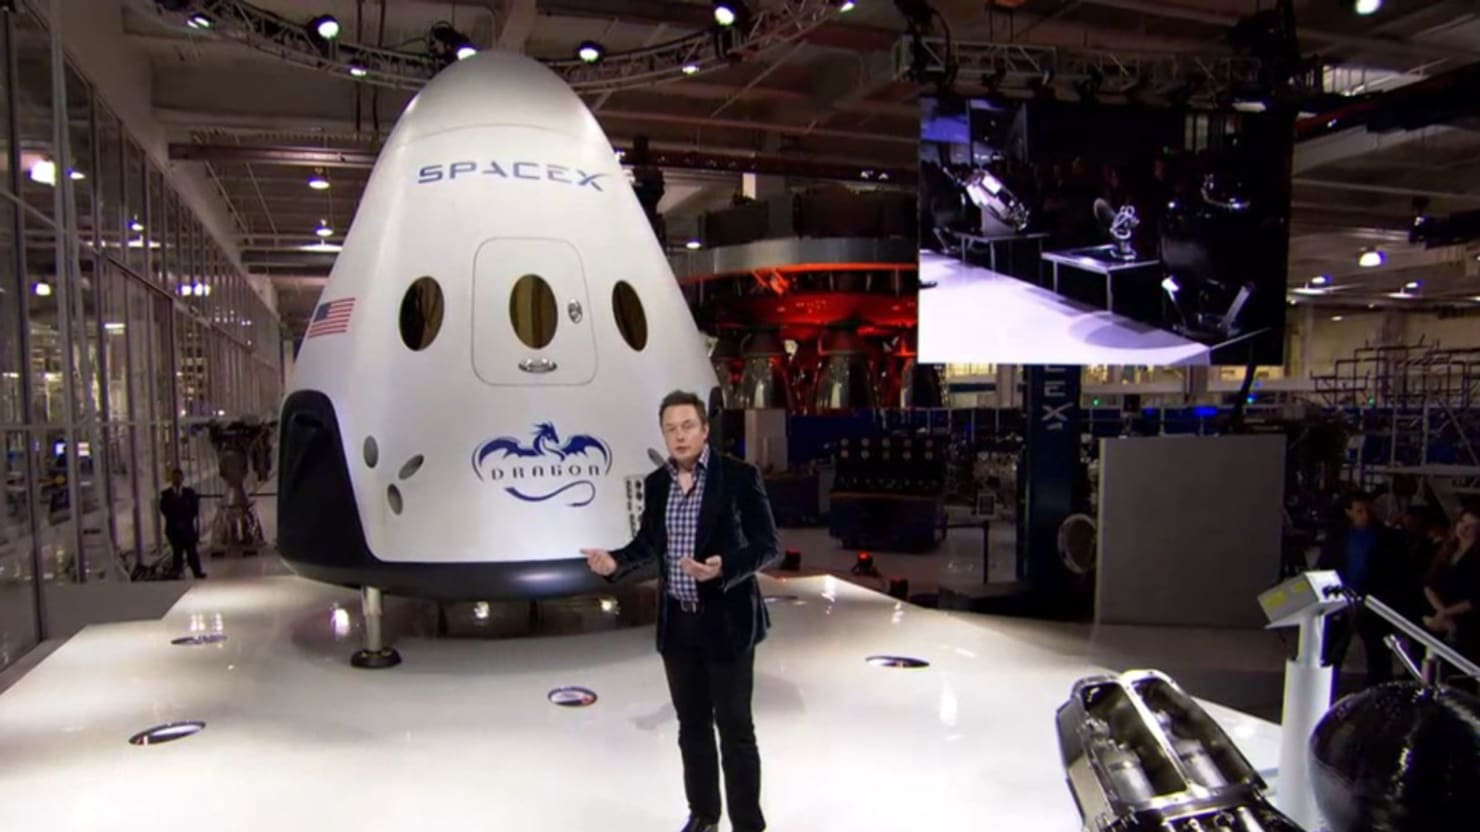 spacex u2019s dragon v2 will land exactly where it wants to